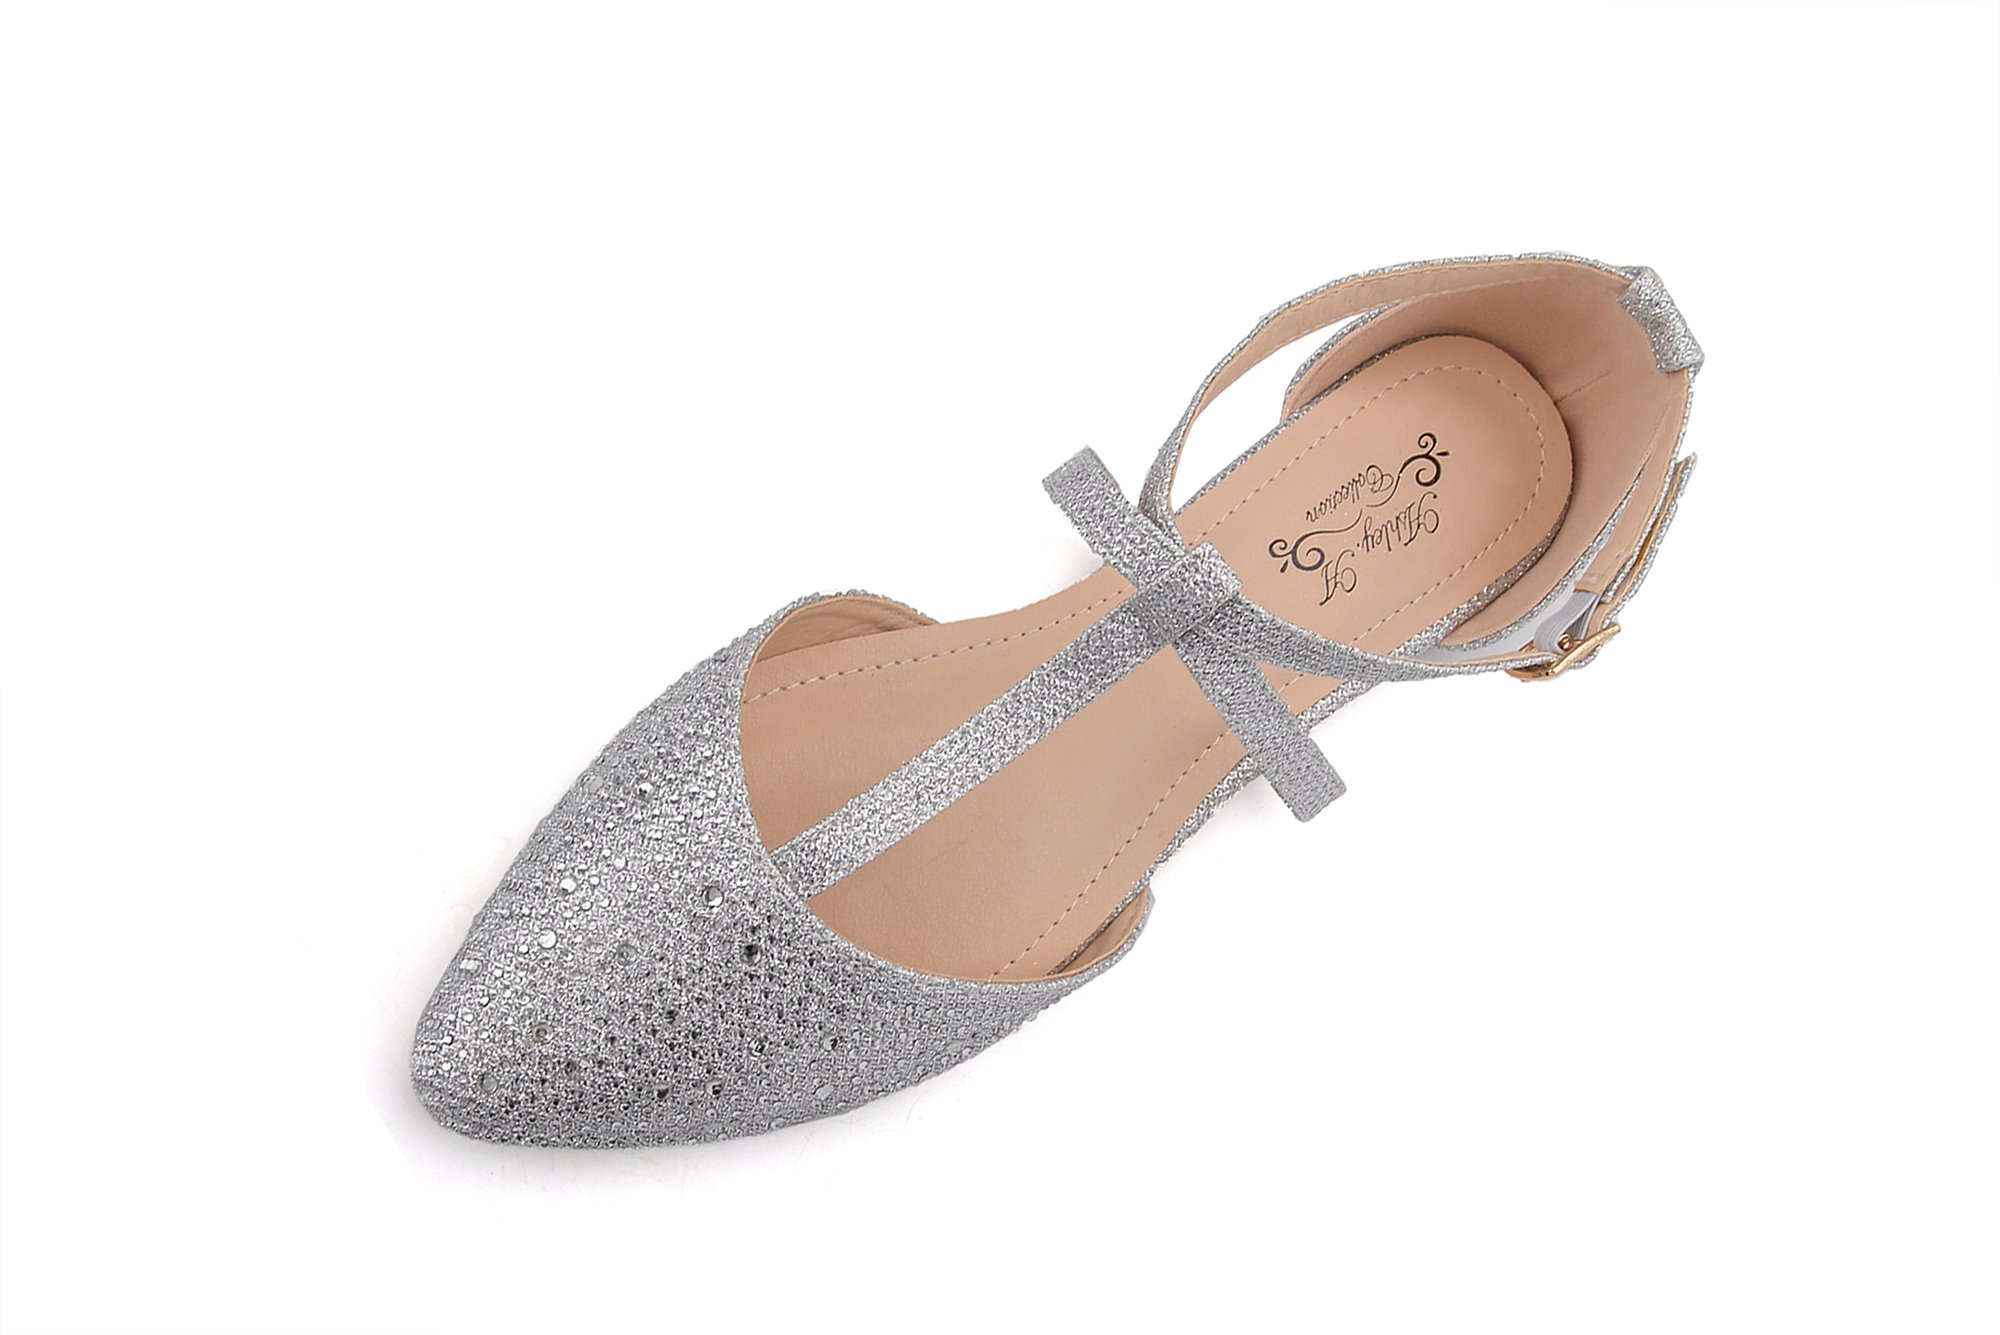 Ashley A Collection(Laurel Womens Pointed Toe Ankle Wrap T-Strap D'Orsay Flats,SILVER6